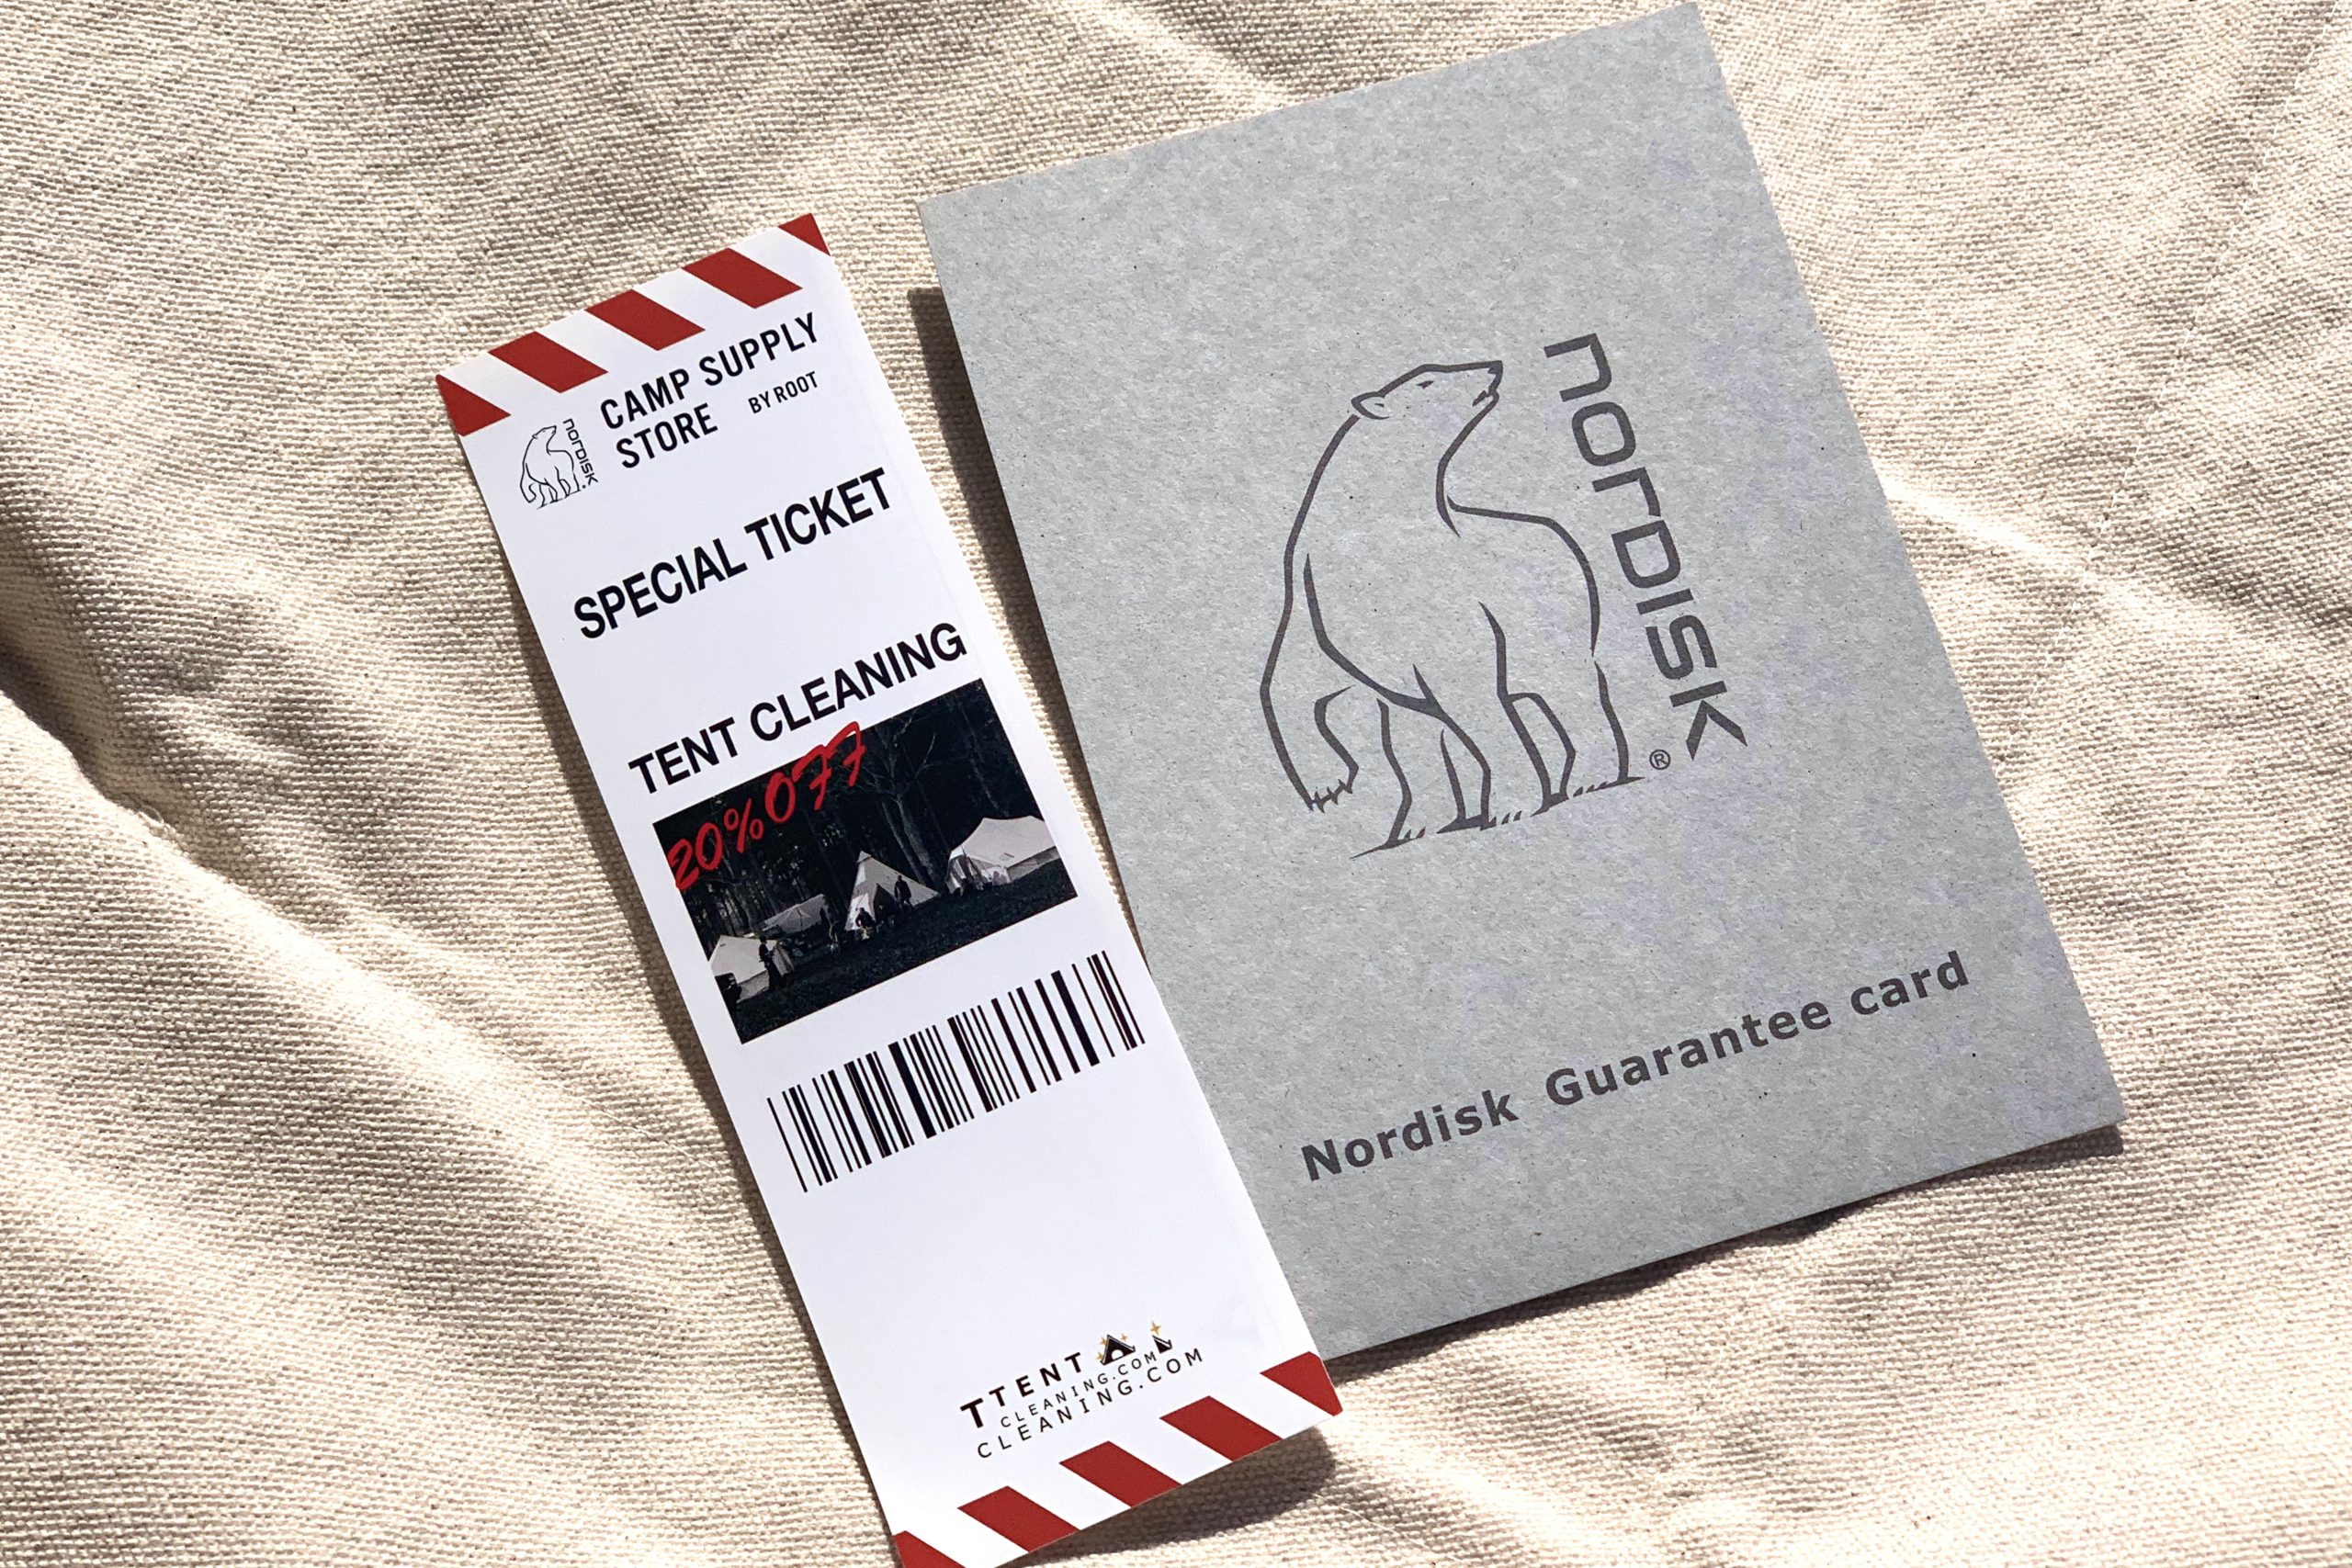 NORDISK-TENT CLEANING -20%OFF TENT CREANING SPECIAL TICKET!